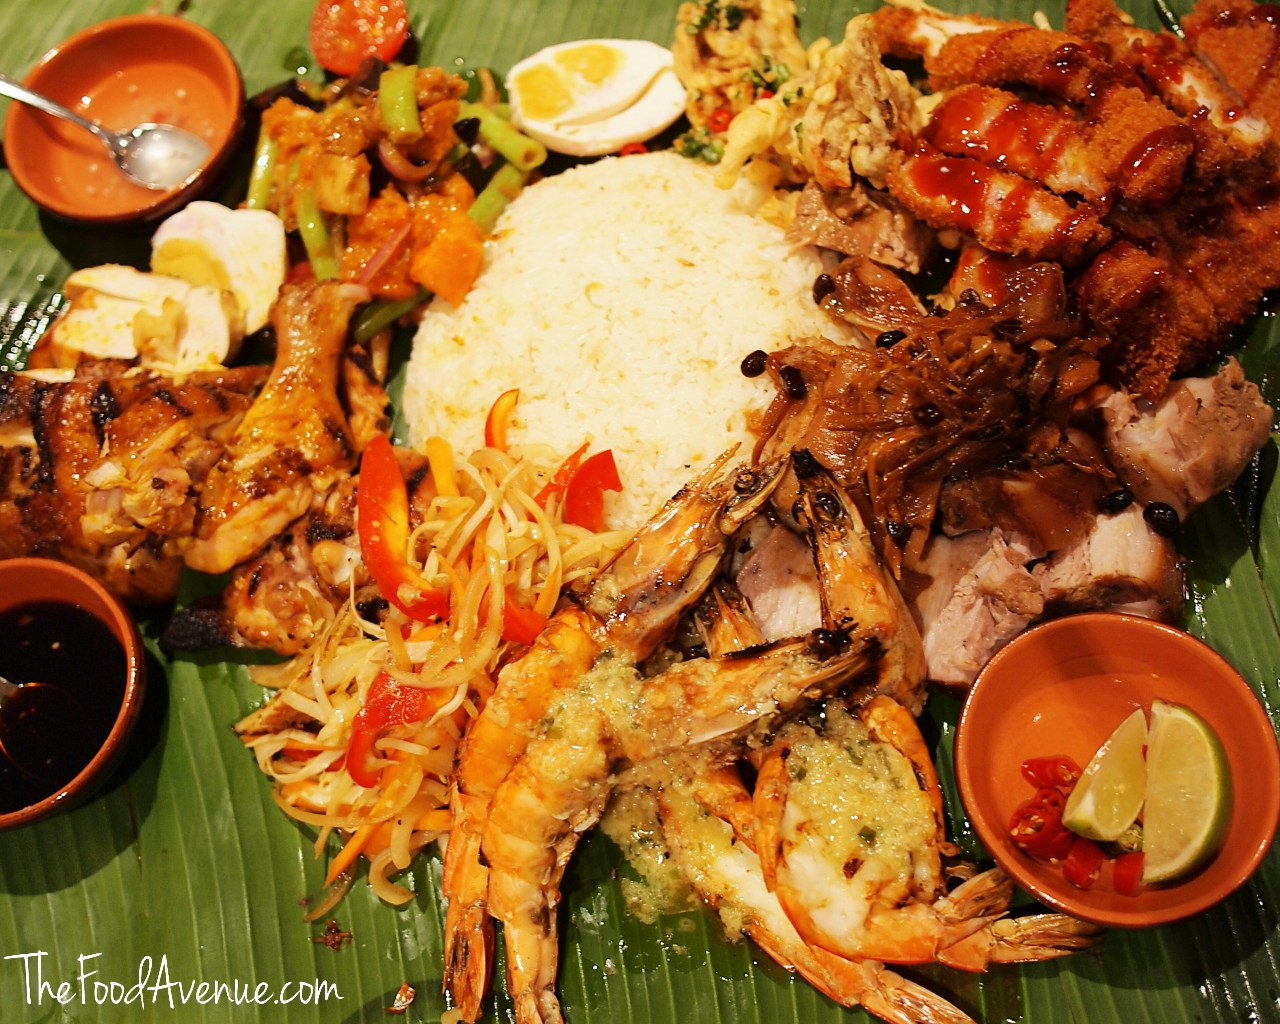 Boodle_Feast_The_Food_Avenue